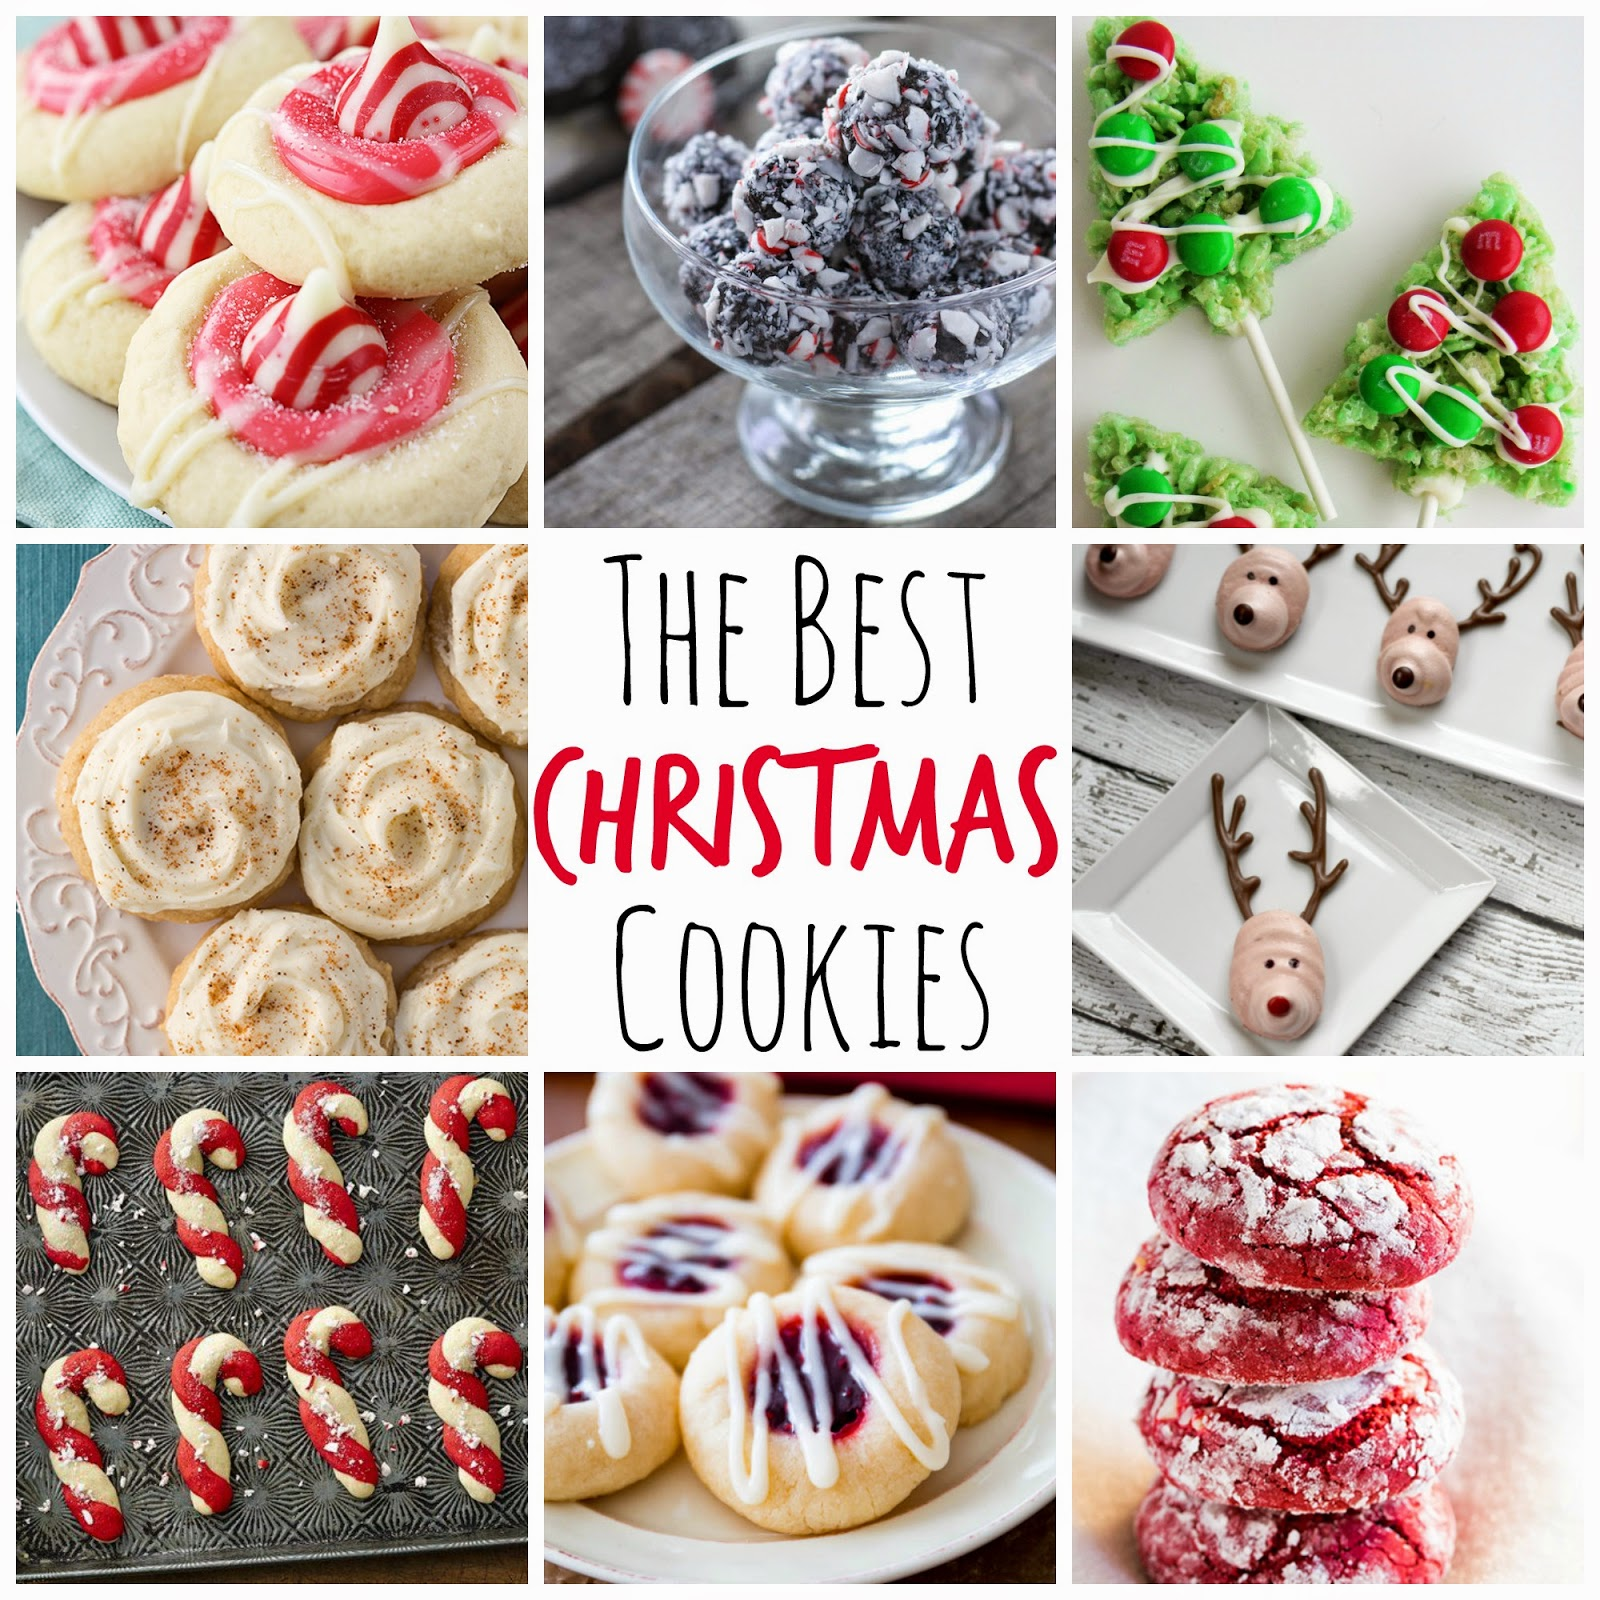 The Best Christmas Cookie Recipes #foodie #sponsored